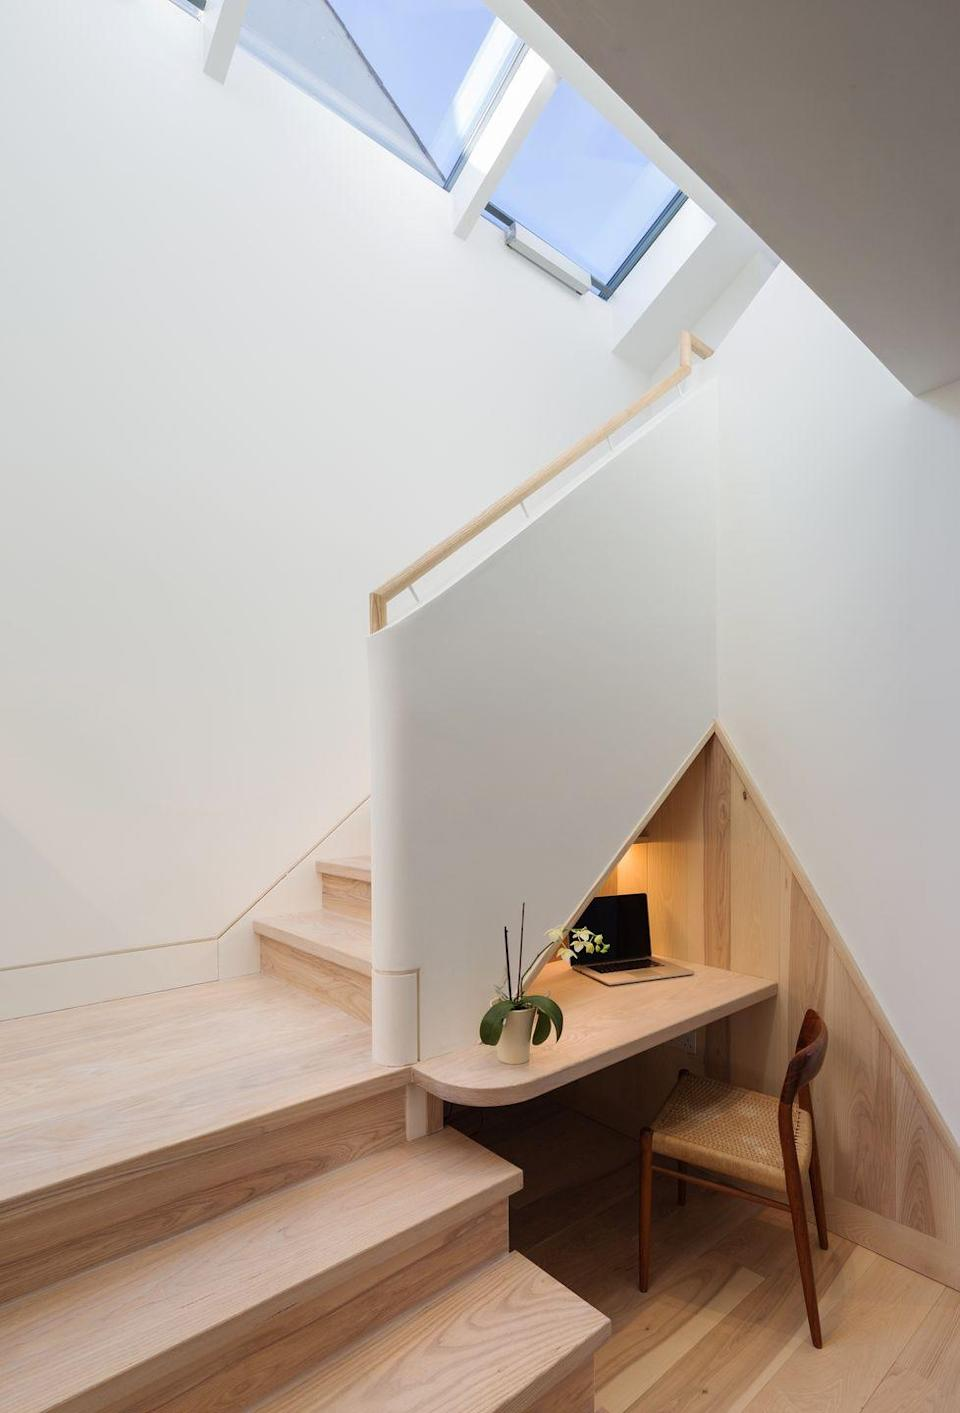 """<p>Cut into the small slice of space beneath this new staircase, and lit from above by a generous skylight, this is the ideal work-from-home nook. It's part of a family home designed by Cambridge-based Mole Architects, which last year picked up three RIBA Awards, including the main prize for innovative local housing scheme Marmalade Lane. <a href=""""https://www.molearchitects.co.uk/"""" rel=""""nofollow noopener"""" target=""""_blank"""" data-ylk=""""slk:molearchitects.co.uk"""" class=""""link rapid-noclick-resp"""">molearchitects.co.uk</a></p>"""